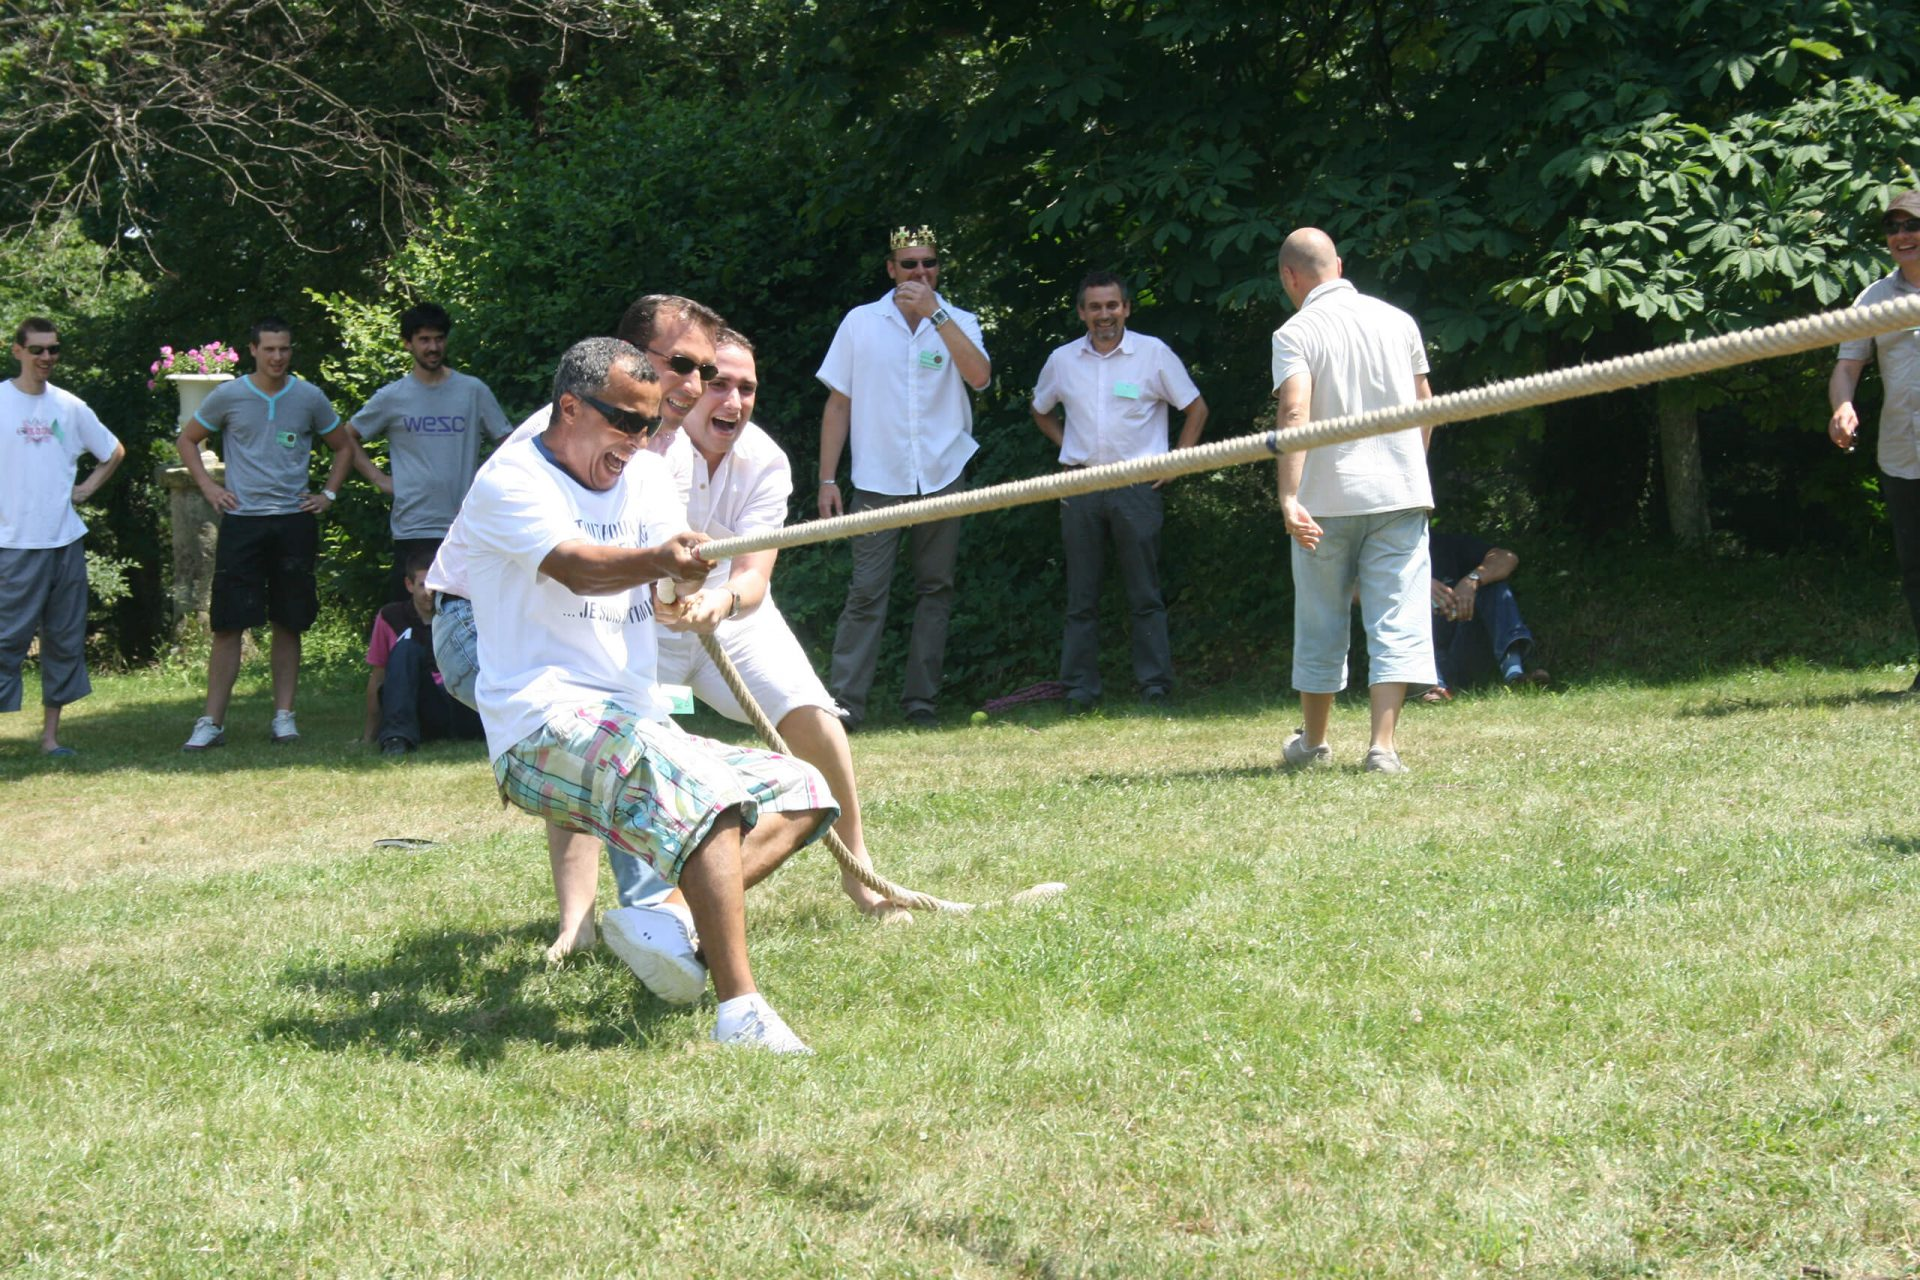 olympic games challenge of strength - tug of ware gardens of a chateau